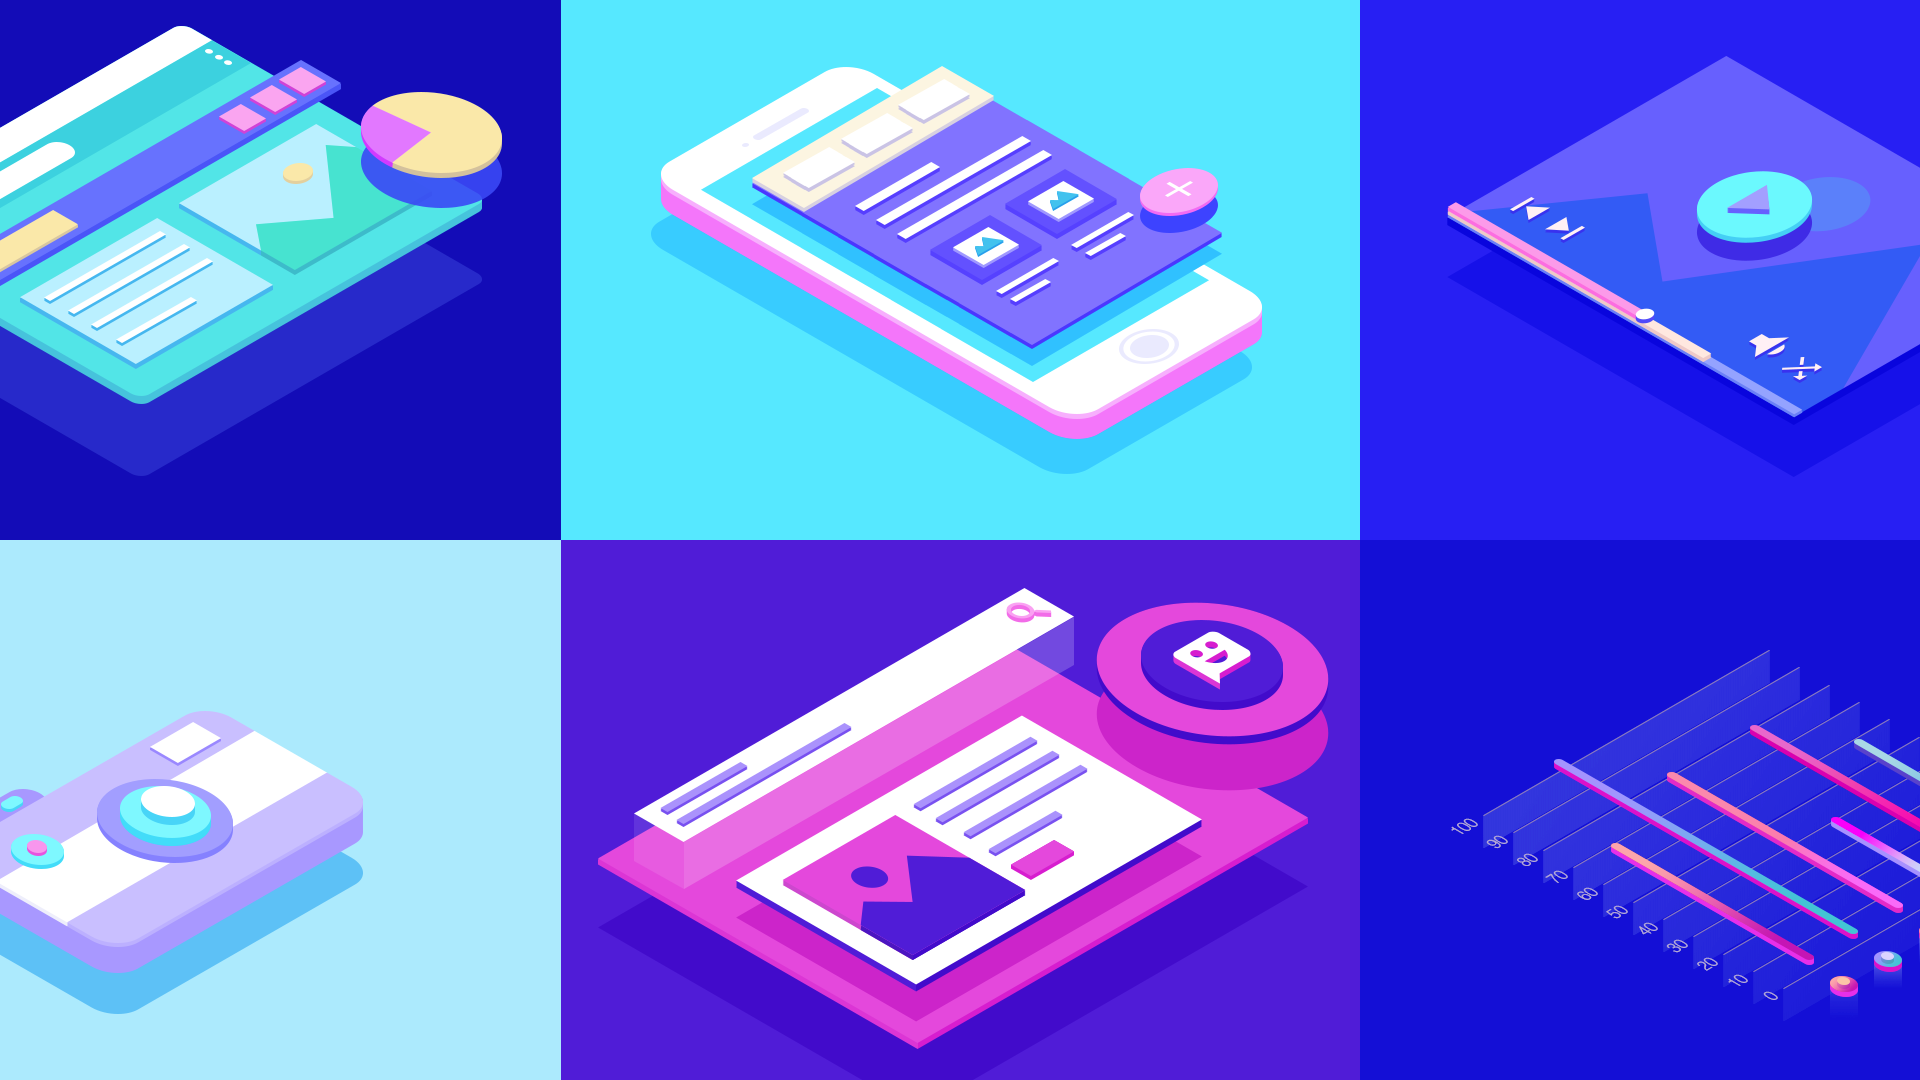 Creating Isometric Illustrations—Made Simple with the Geometric